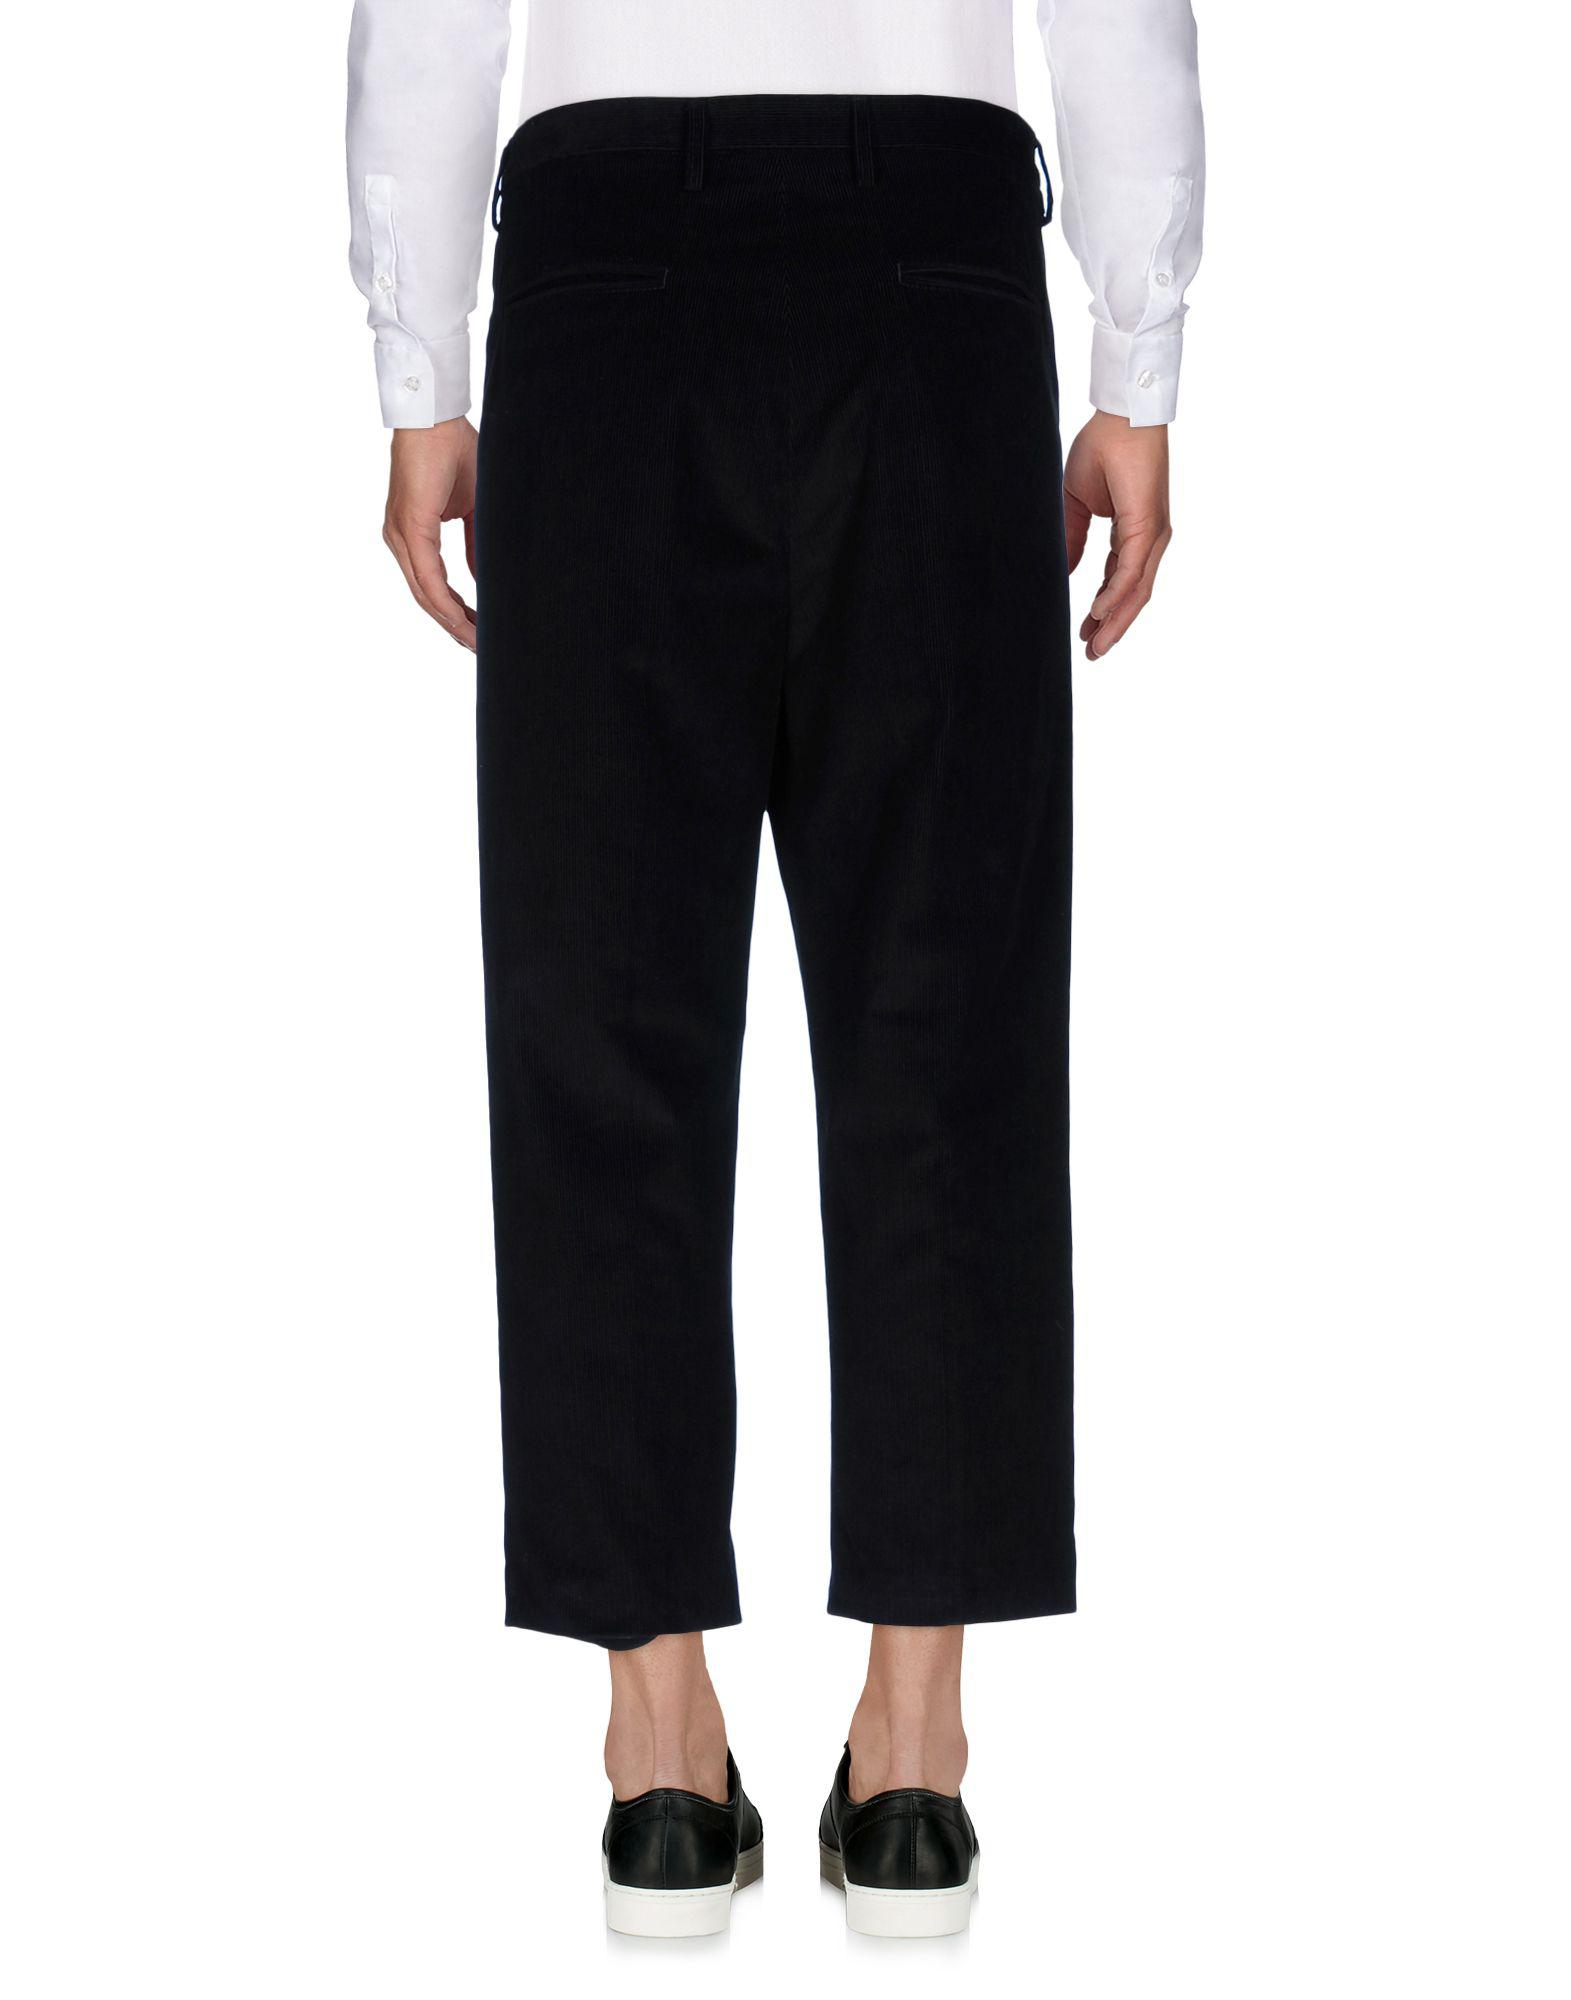 Covert Velvet Casual Pants in Black for Men